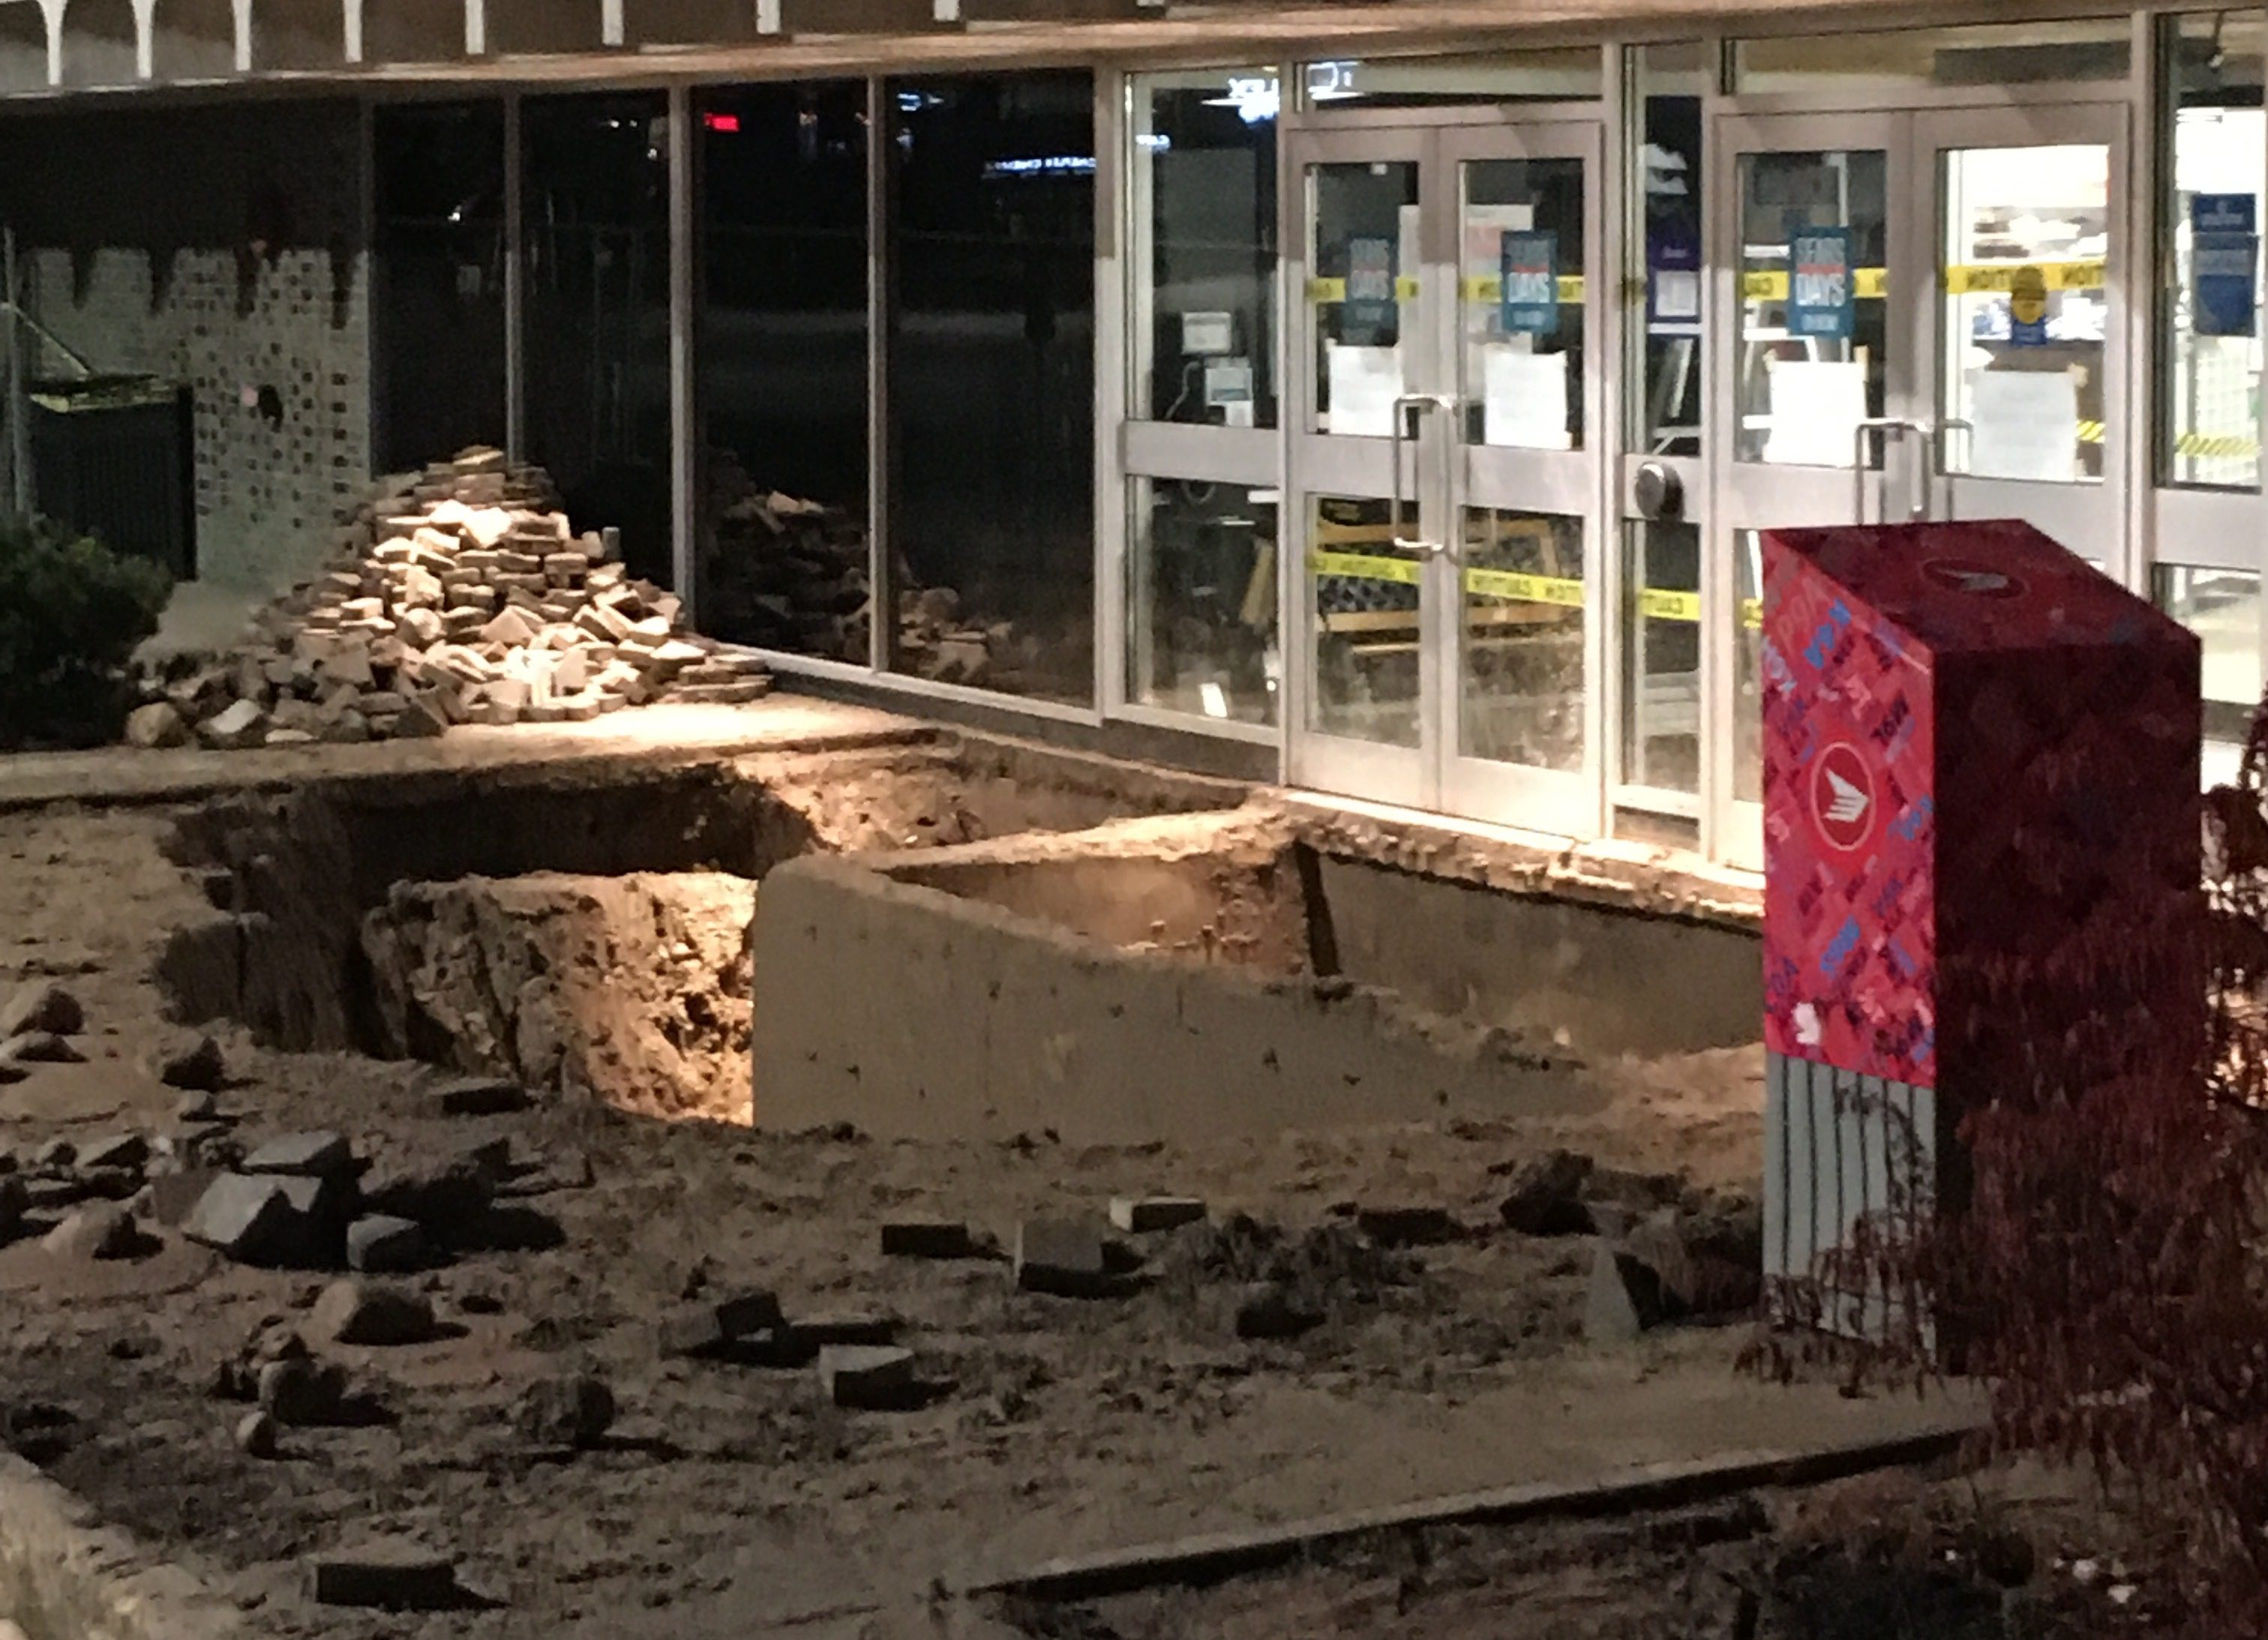 Uncategorized Sears Appliances Kitchener sinkhole washes out shoppers at fairview park mall 570 news sears kitcheners nov 15 2016 photo jeff pickel news